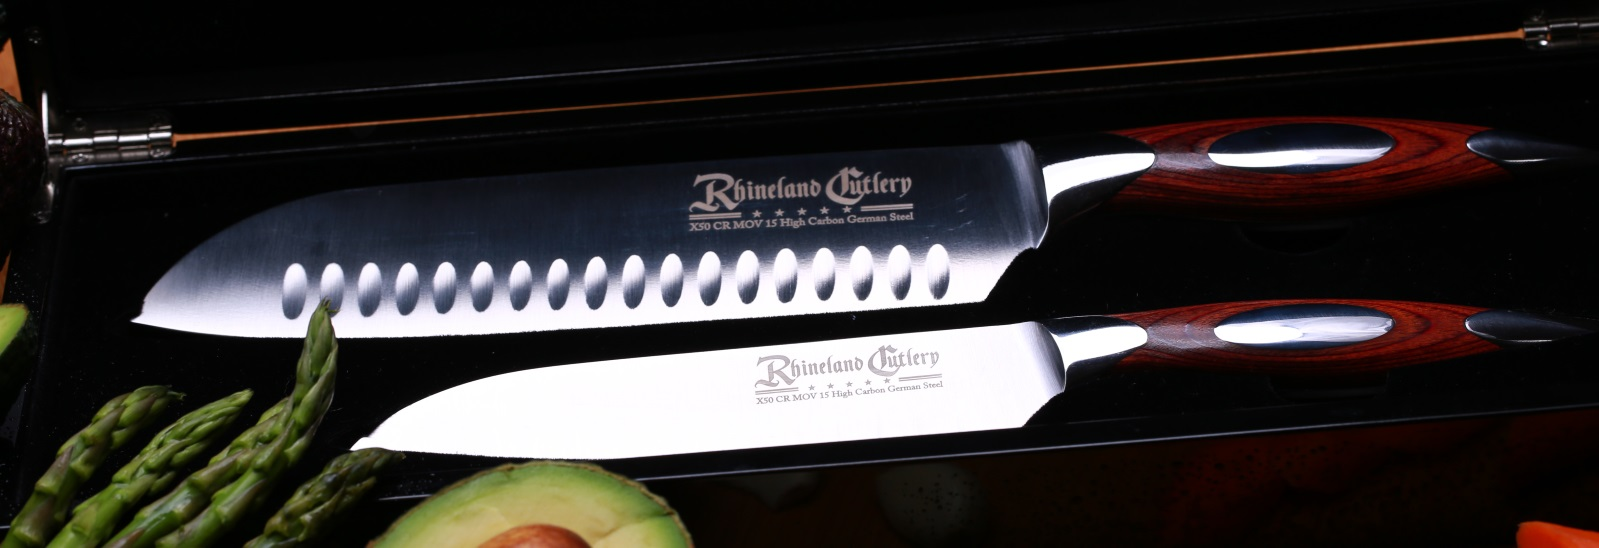 Rhineland_Cuterly_2-pc-Santoku-box-1600x547